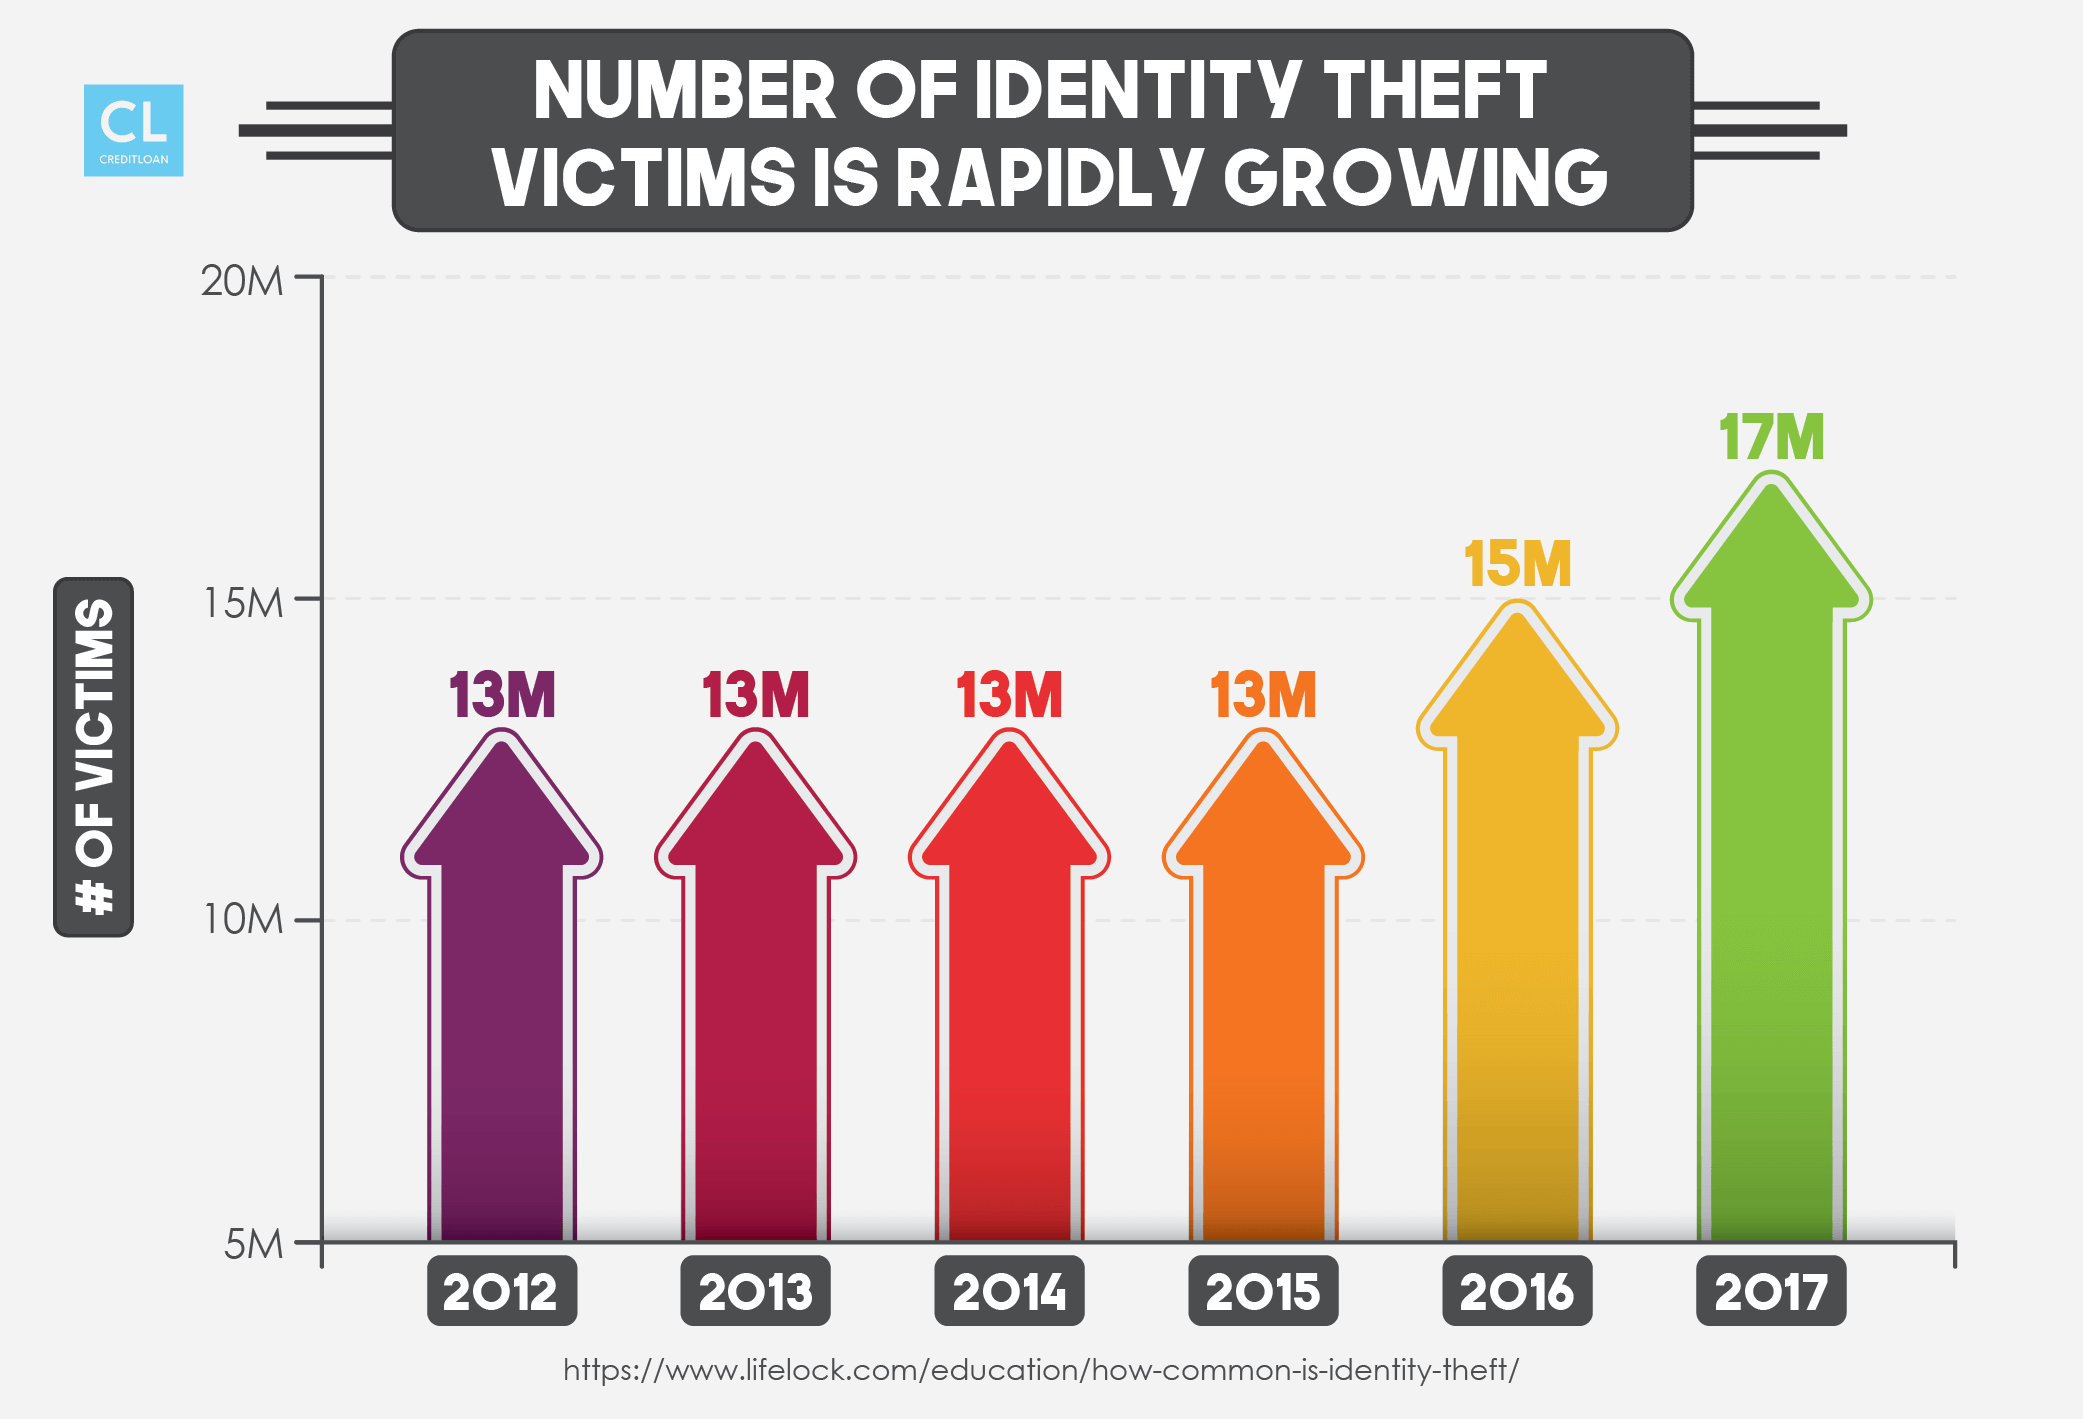 Number of Identity Theft Victims from 2012-2017